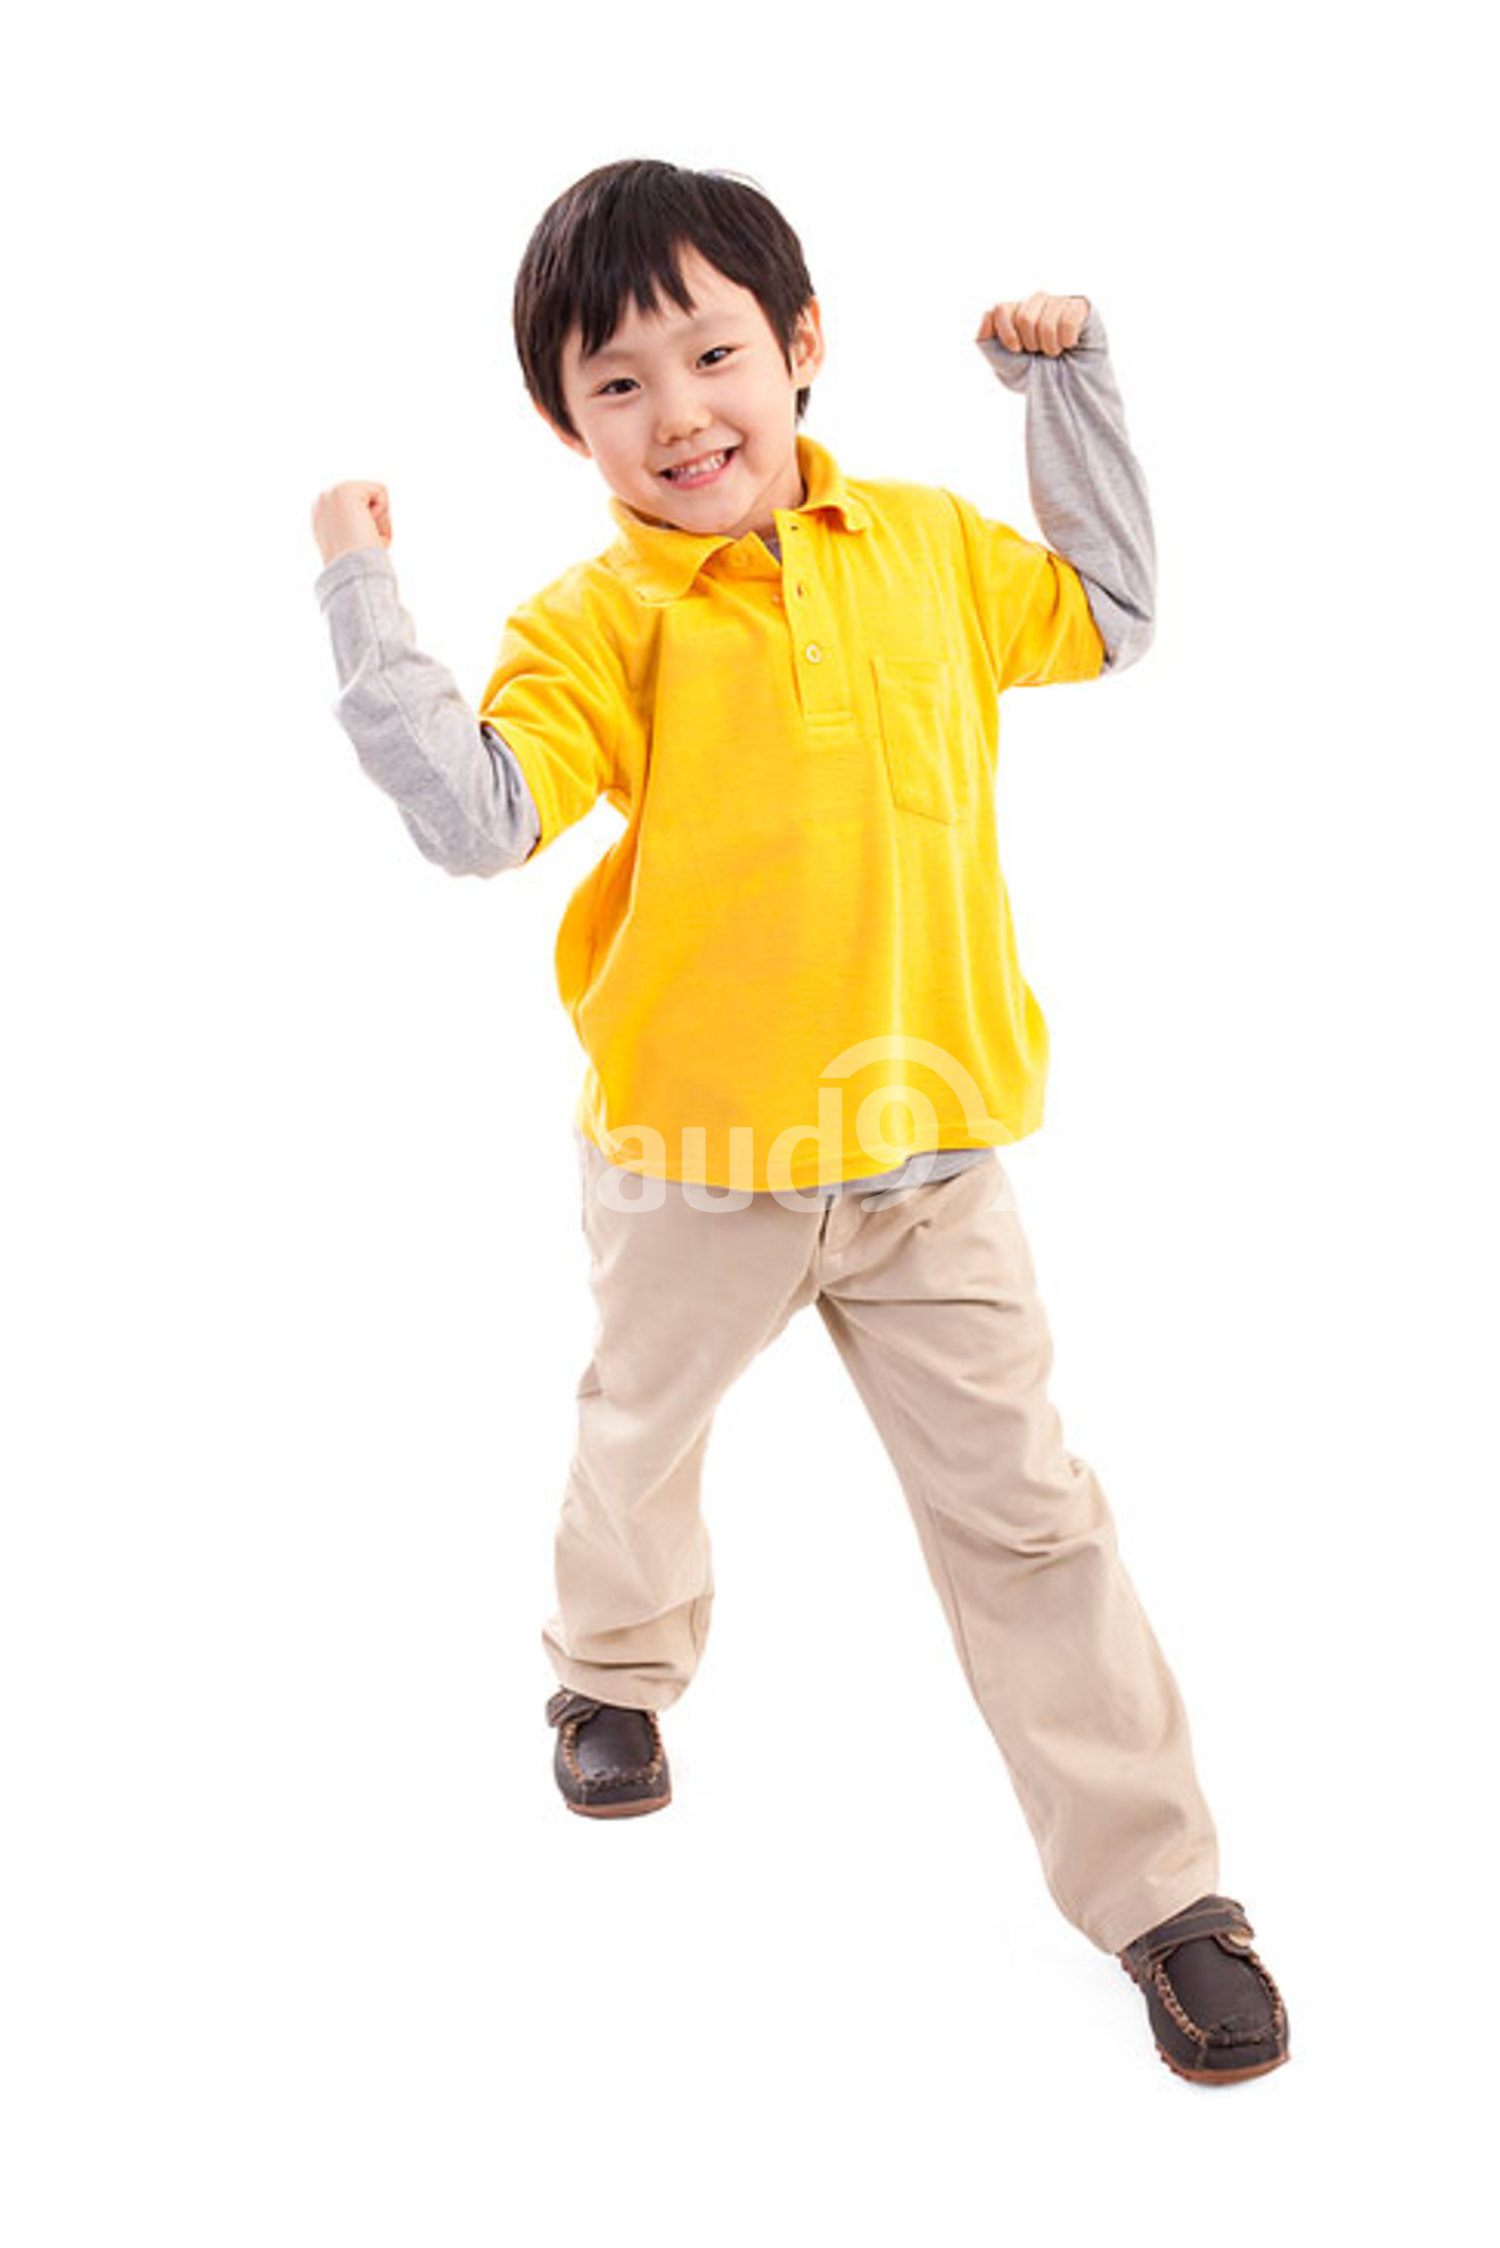 Cute Chinese boy showing strength